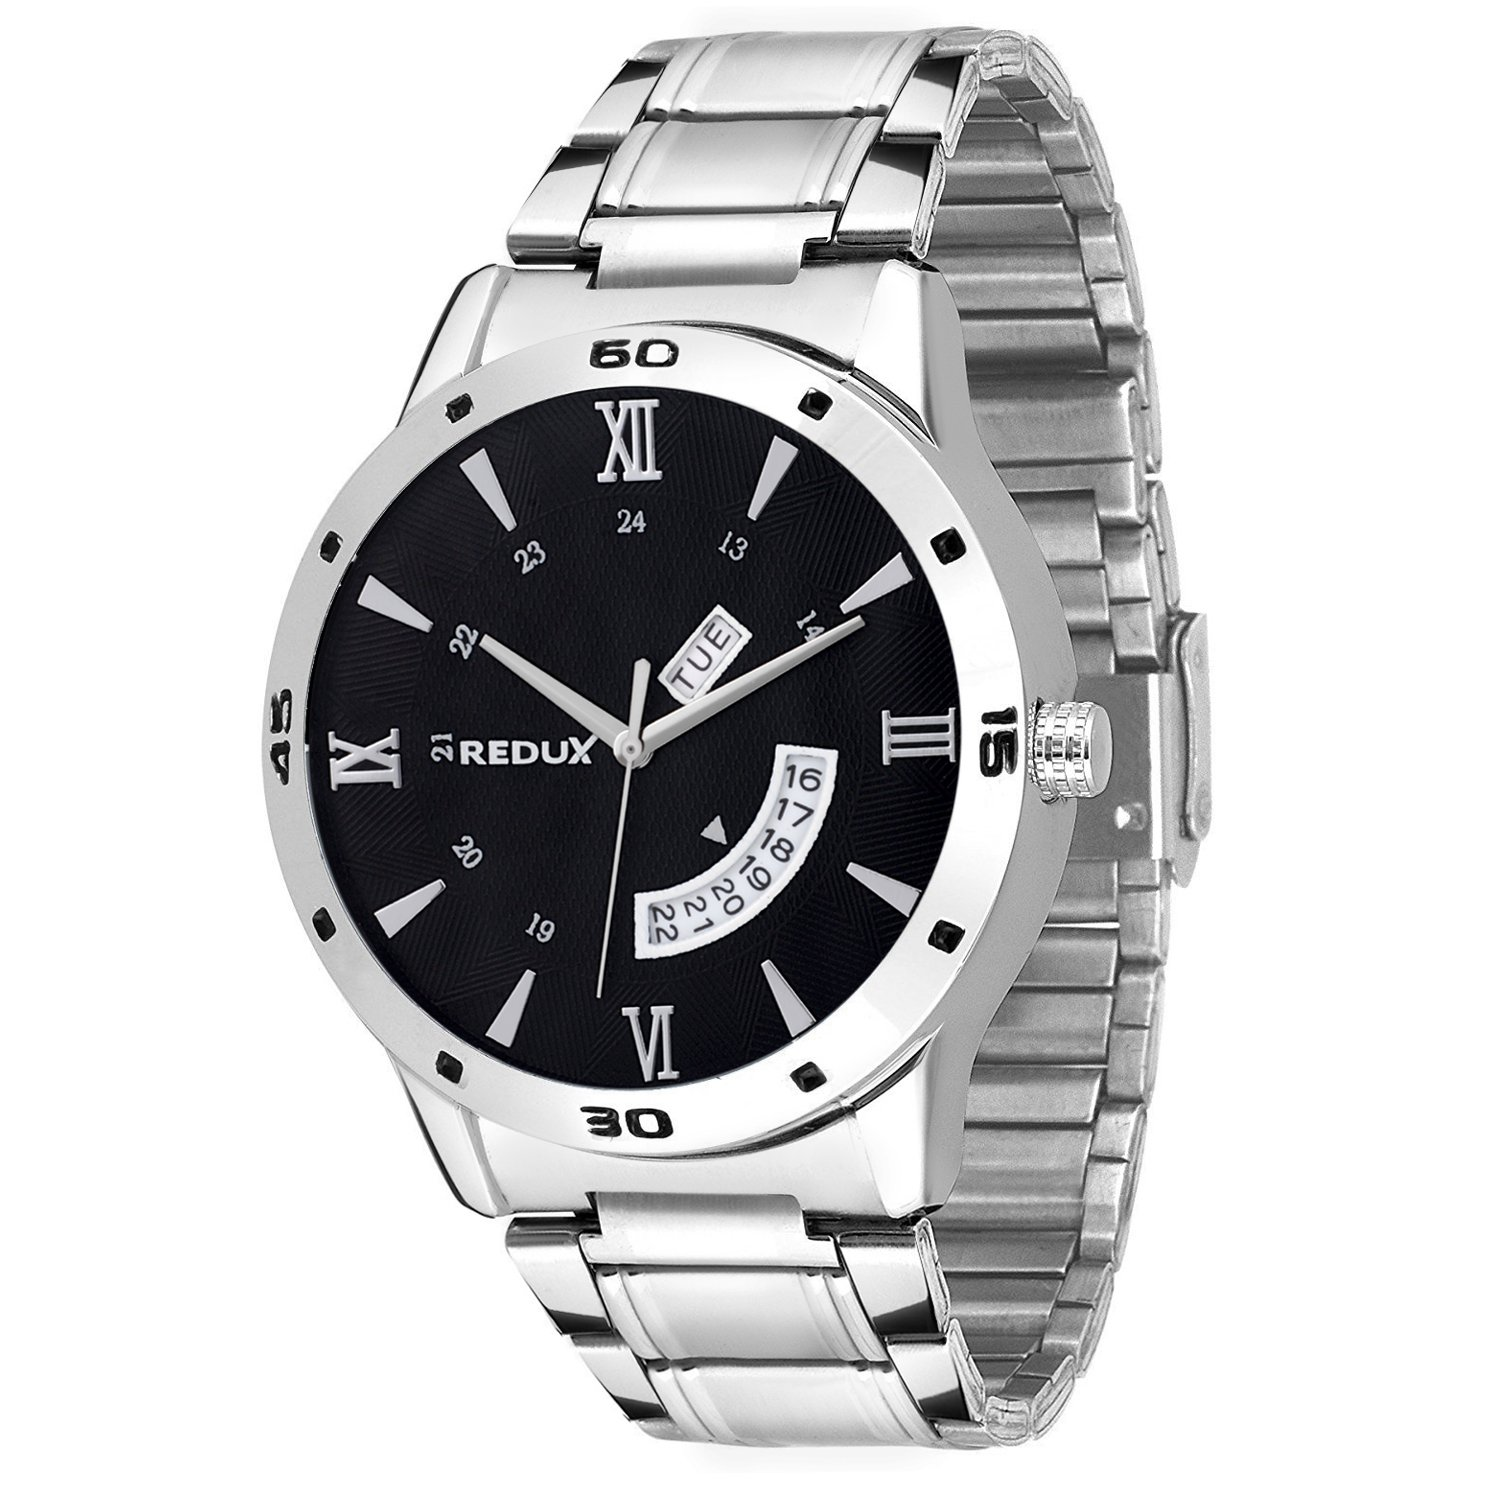 Redux wrist sporty watches shop